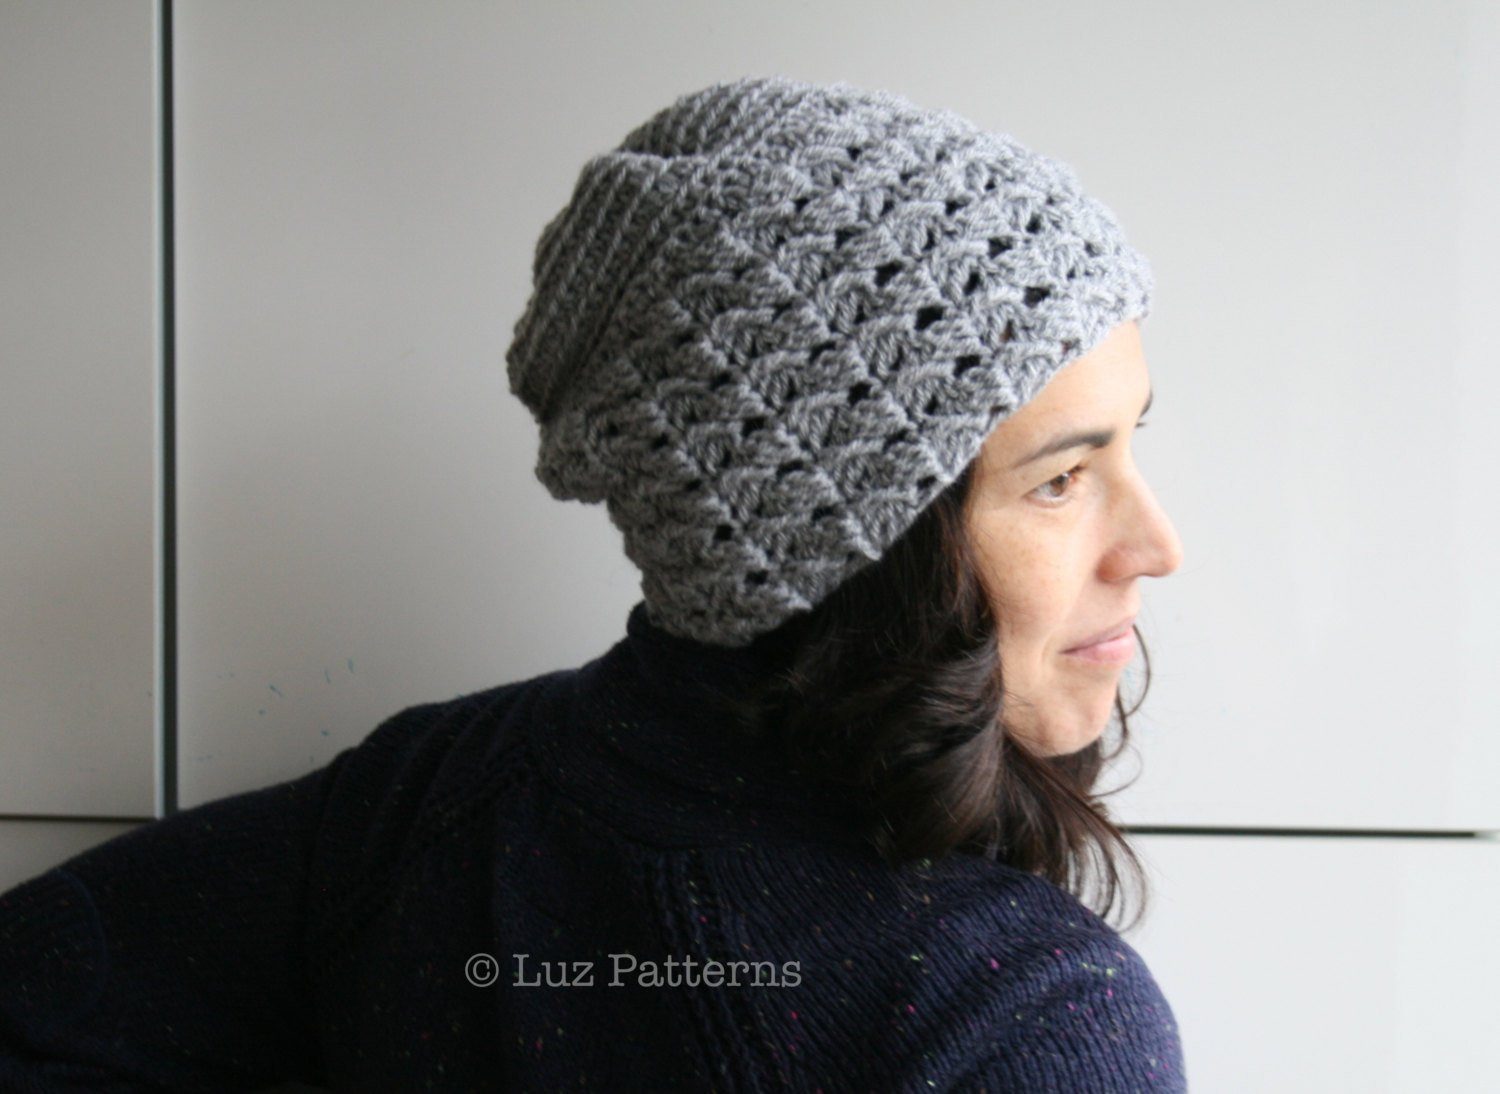 Crochet Slouchy Beanie Awesome Crochet Patterns Slouchy Hat Crochet Women Beanie Pattern Of Charming 45 Images Crochet Slouchy Beanie